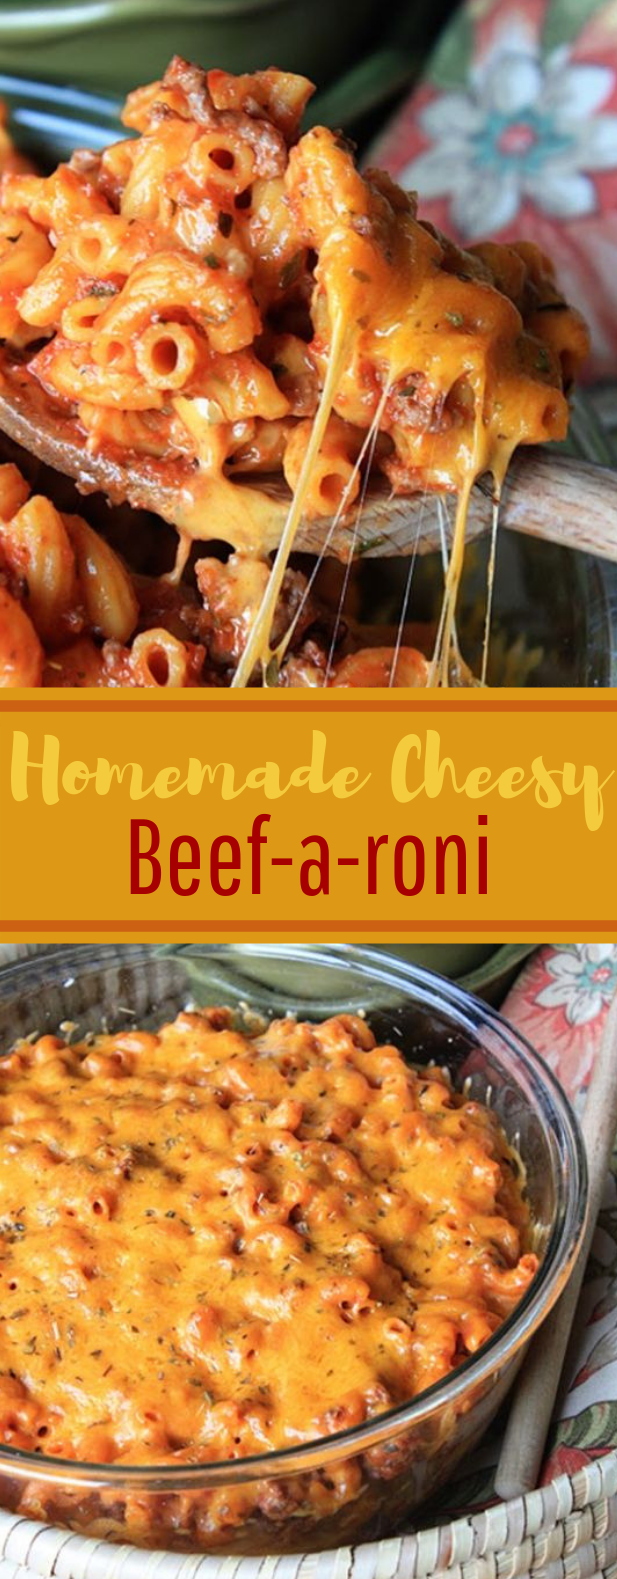 Homemade Cheesy Beef-a-roni with Barilla #comfortfood #delicious